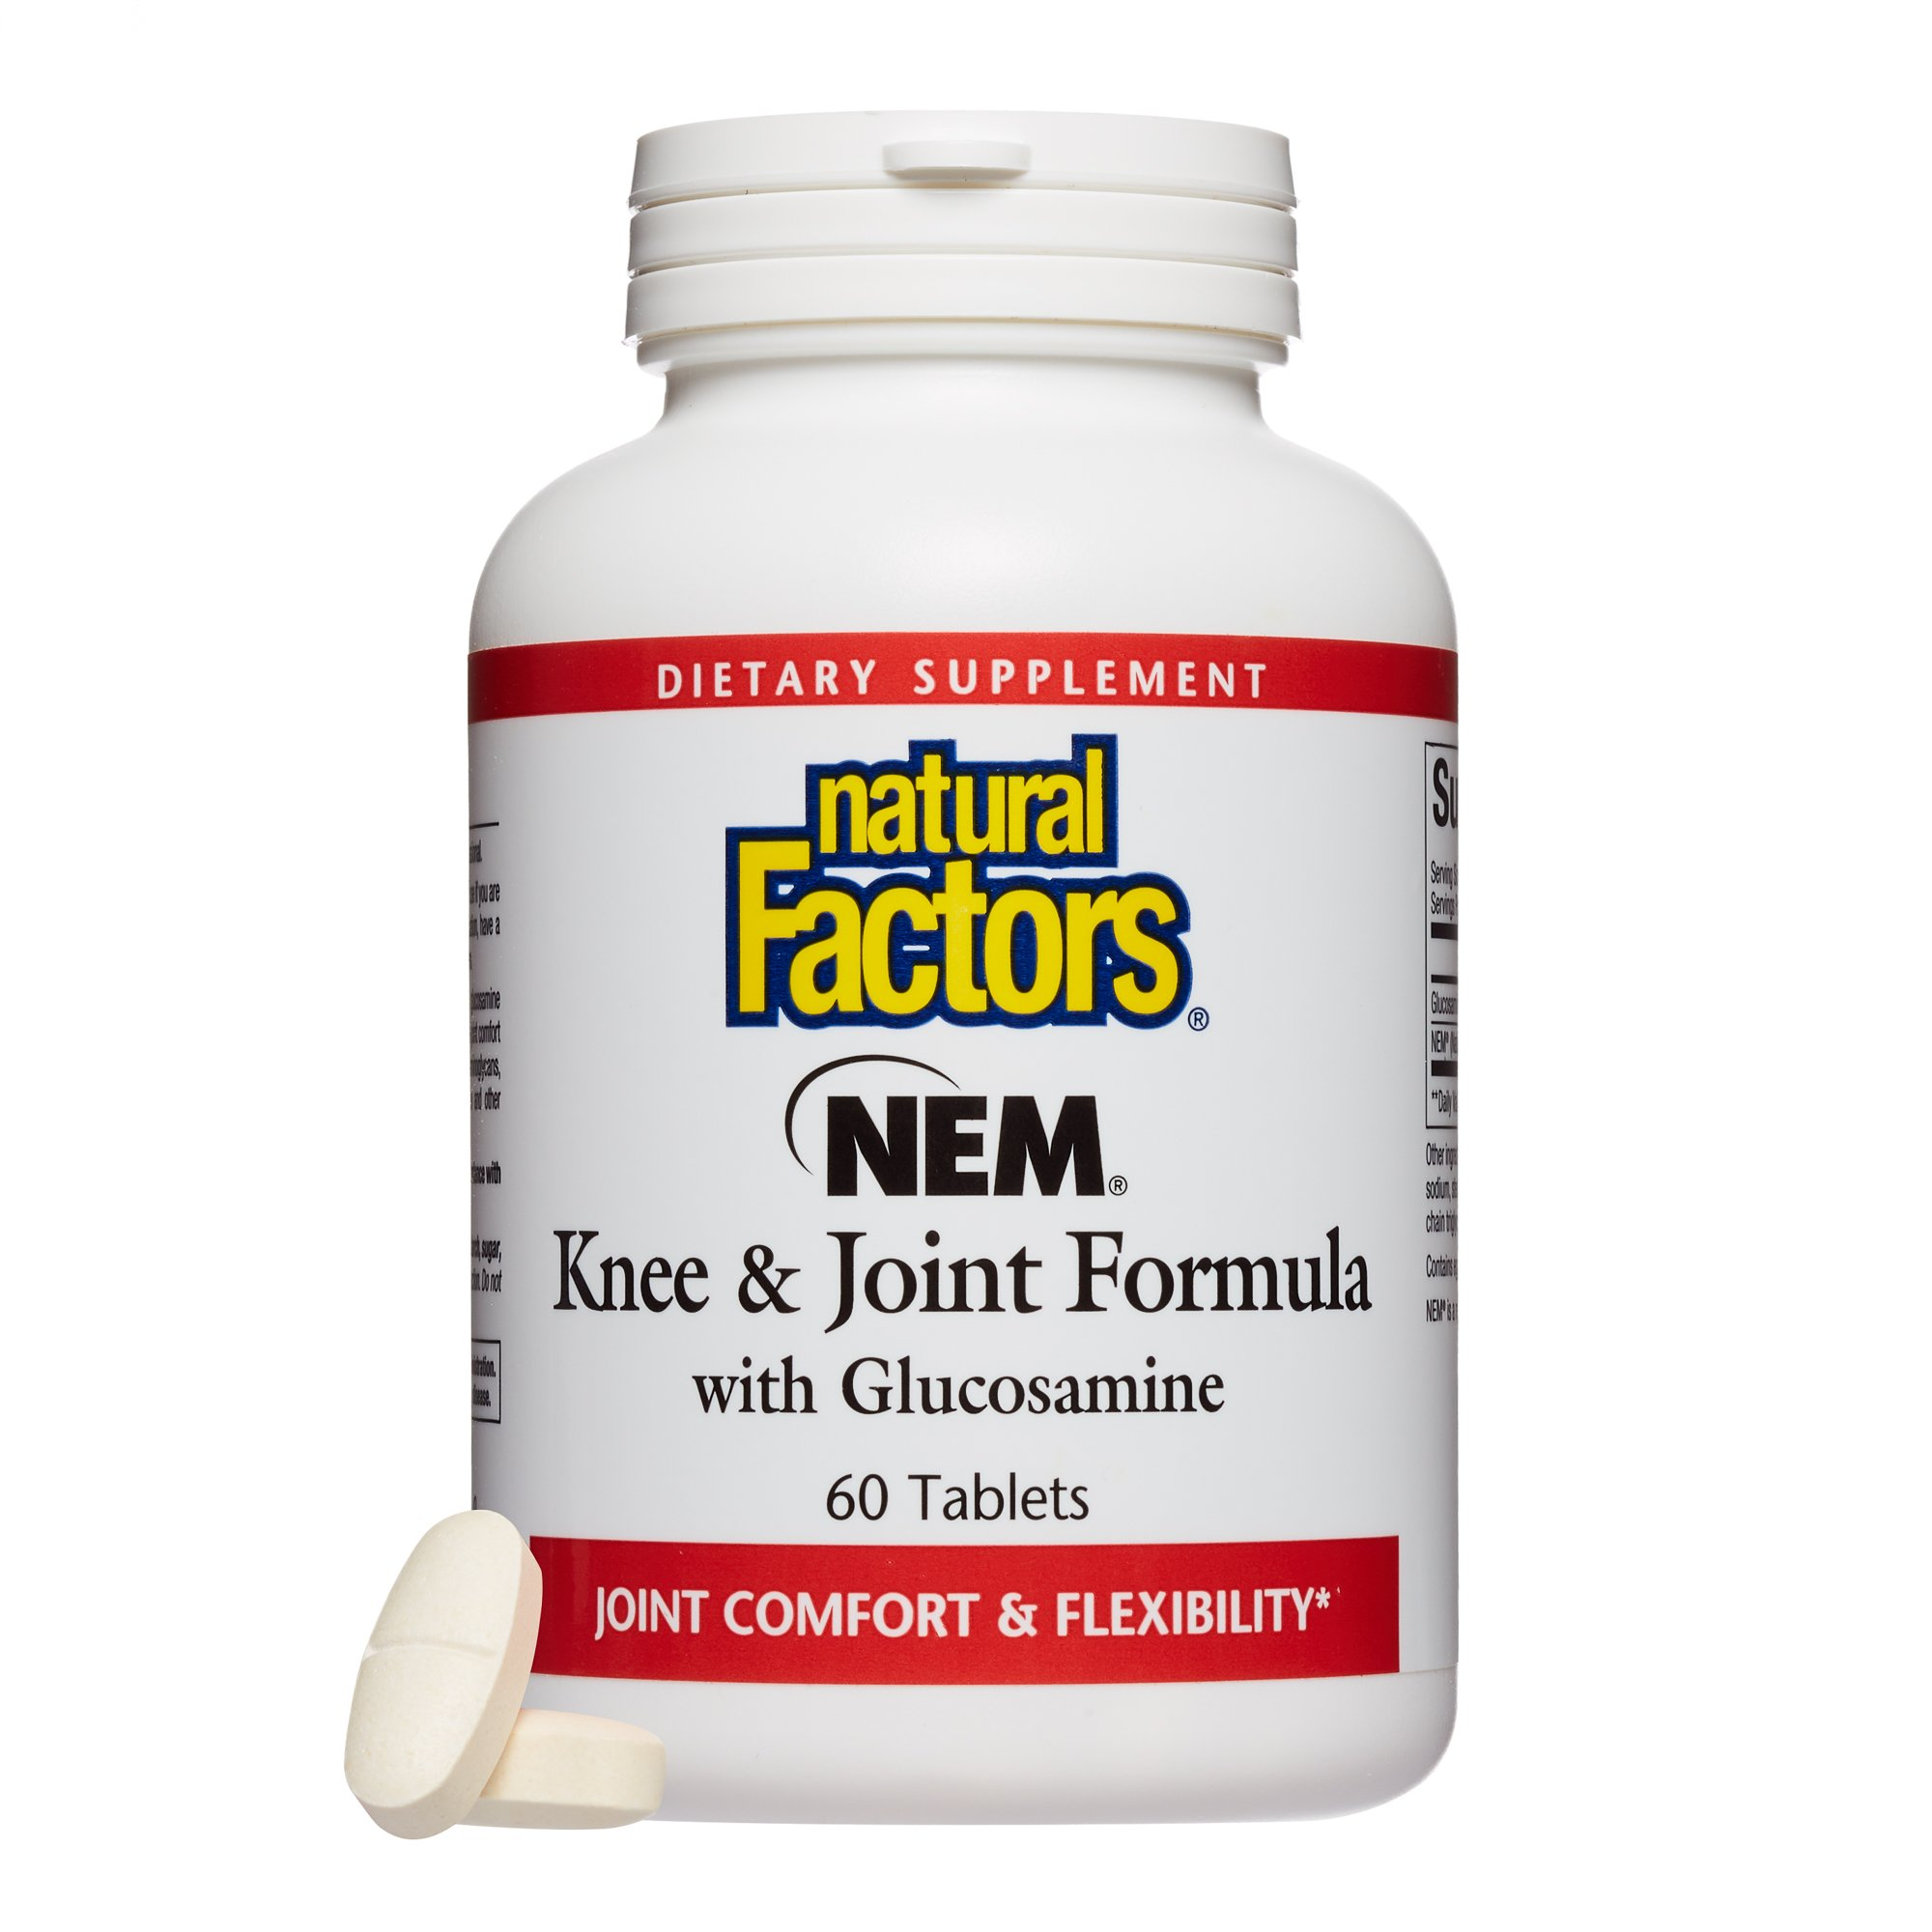 Natural Factors - NEM Knee & Joint Formula with Glucosamine, Promotes Joint Comfort, Flexibility & Mobility, Gluten Free, 60 Tablets